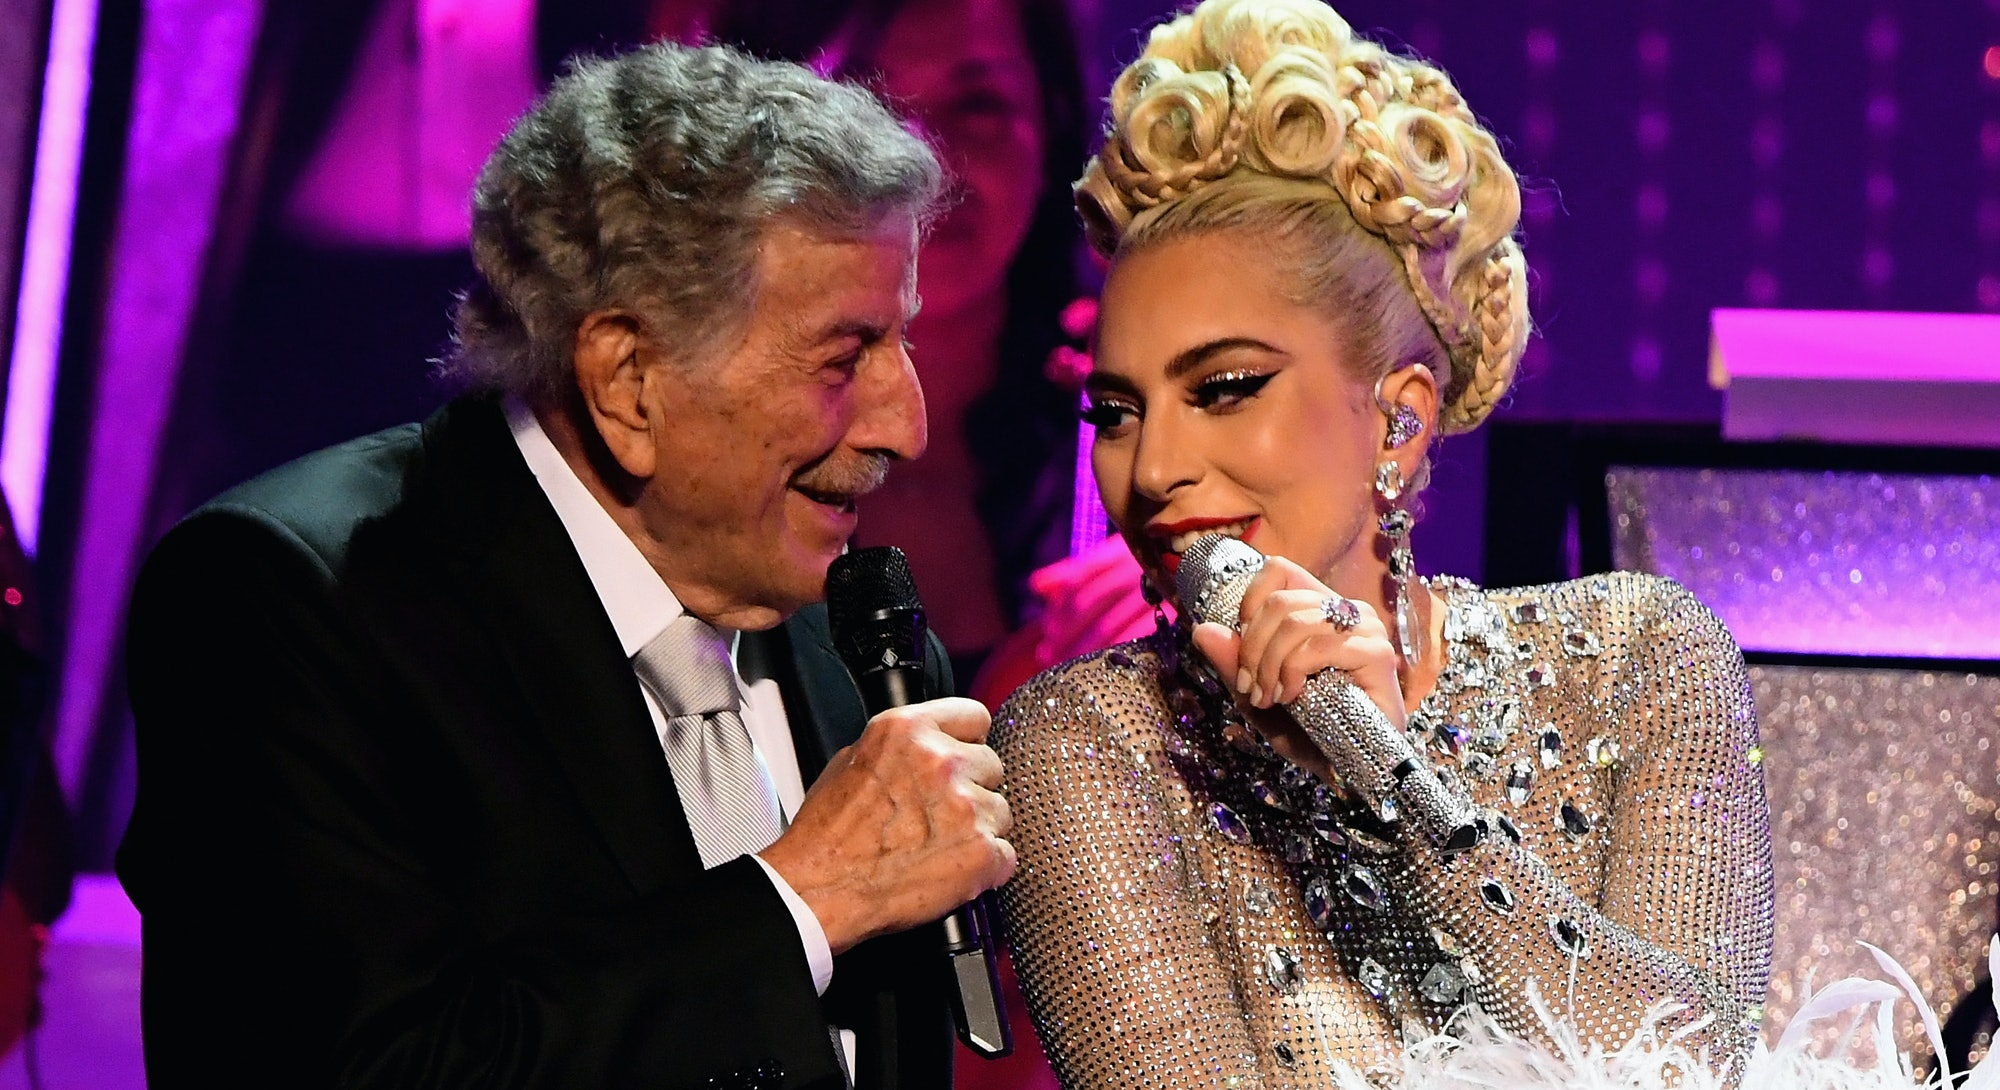 Lady Gaga performs with Tony Bennett during her 'JAZZ & PIANO' residency at Park Theater.